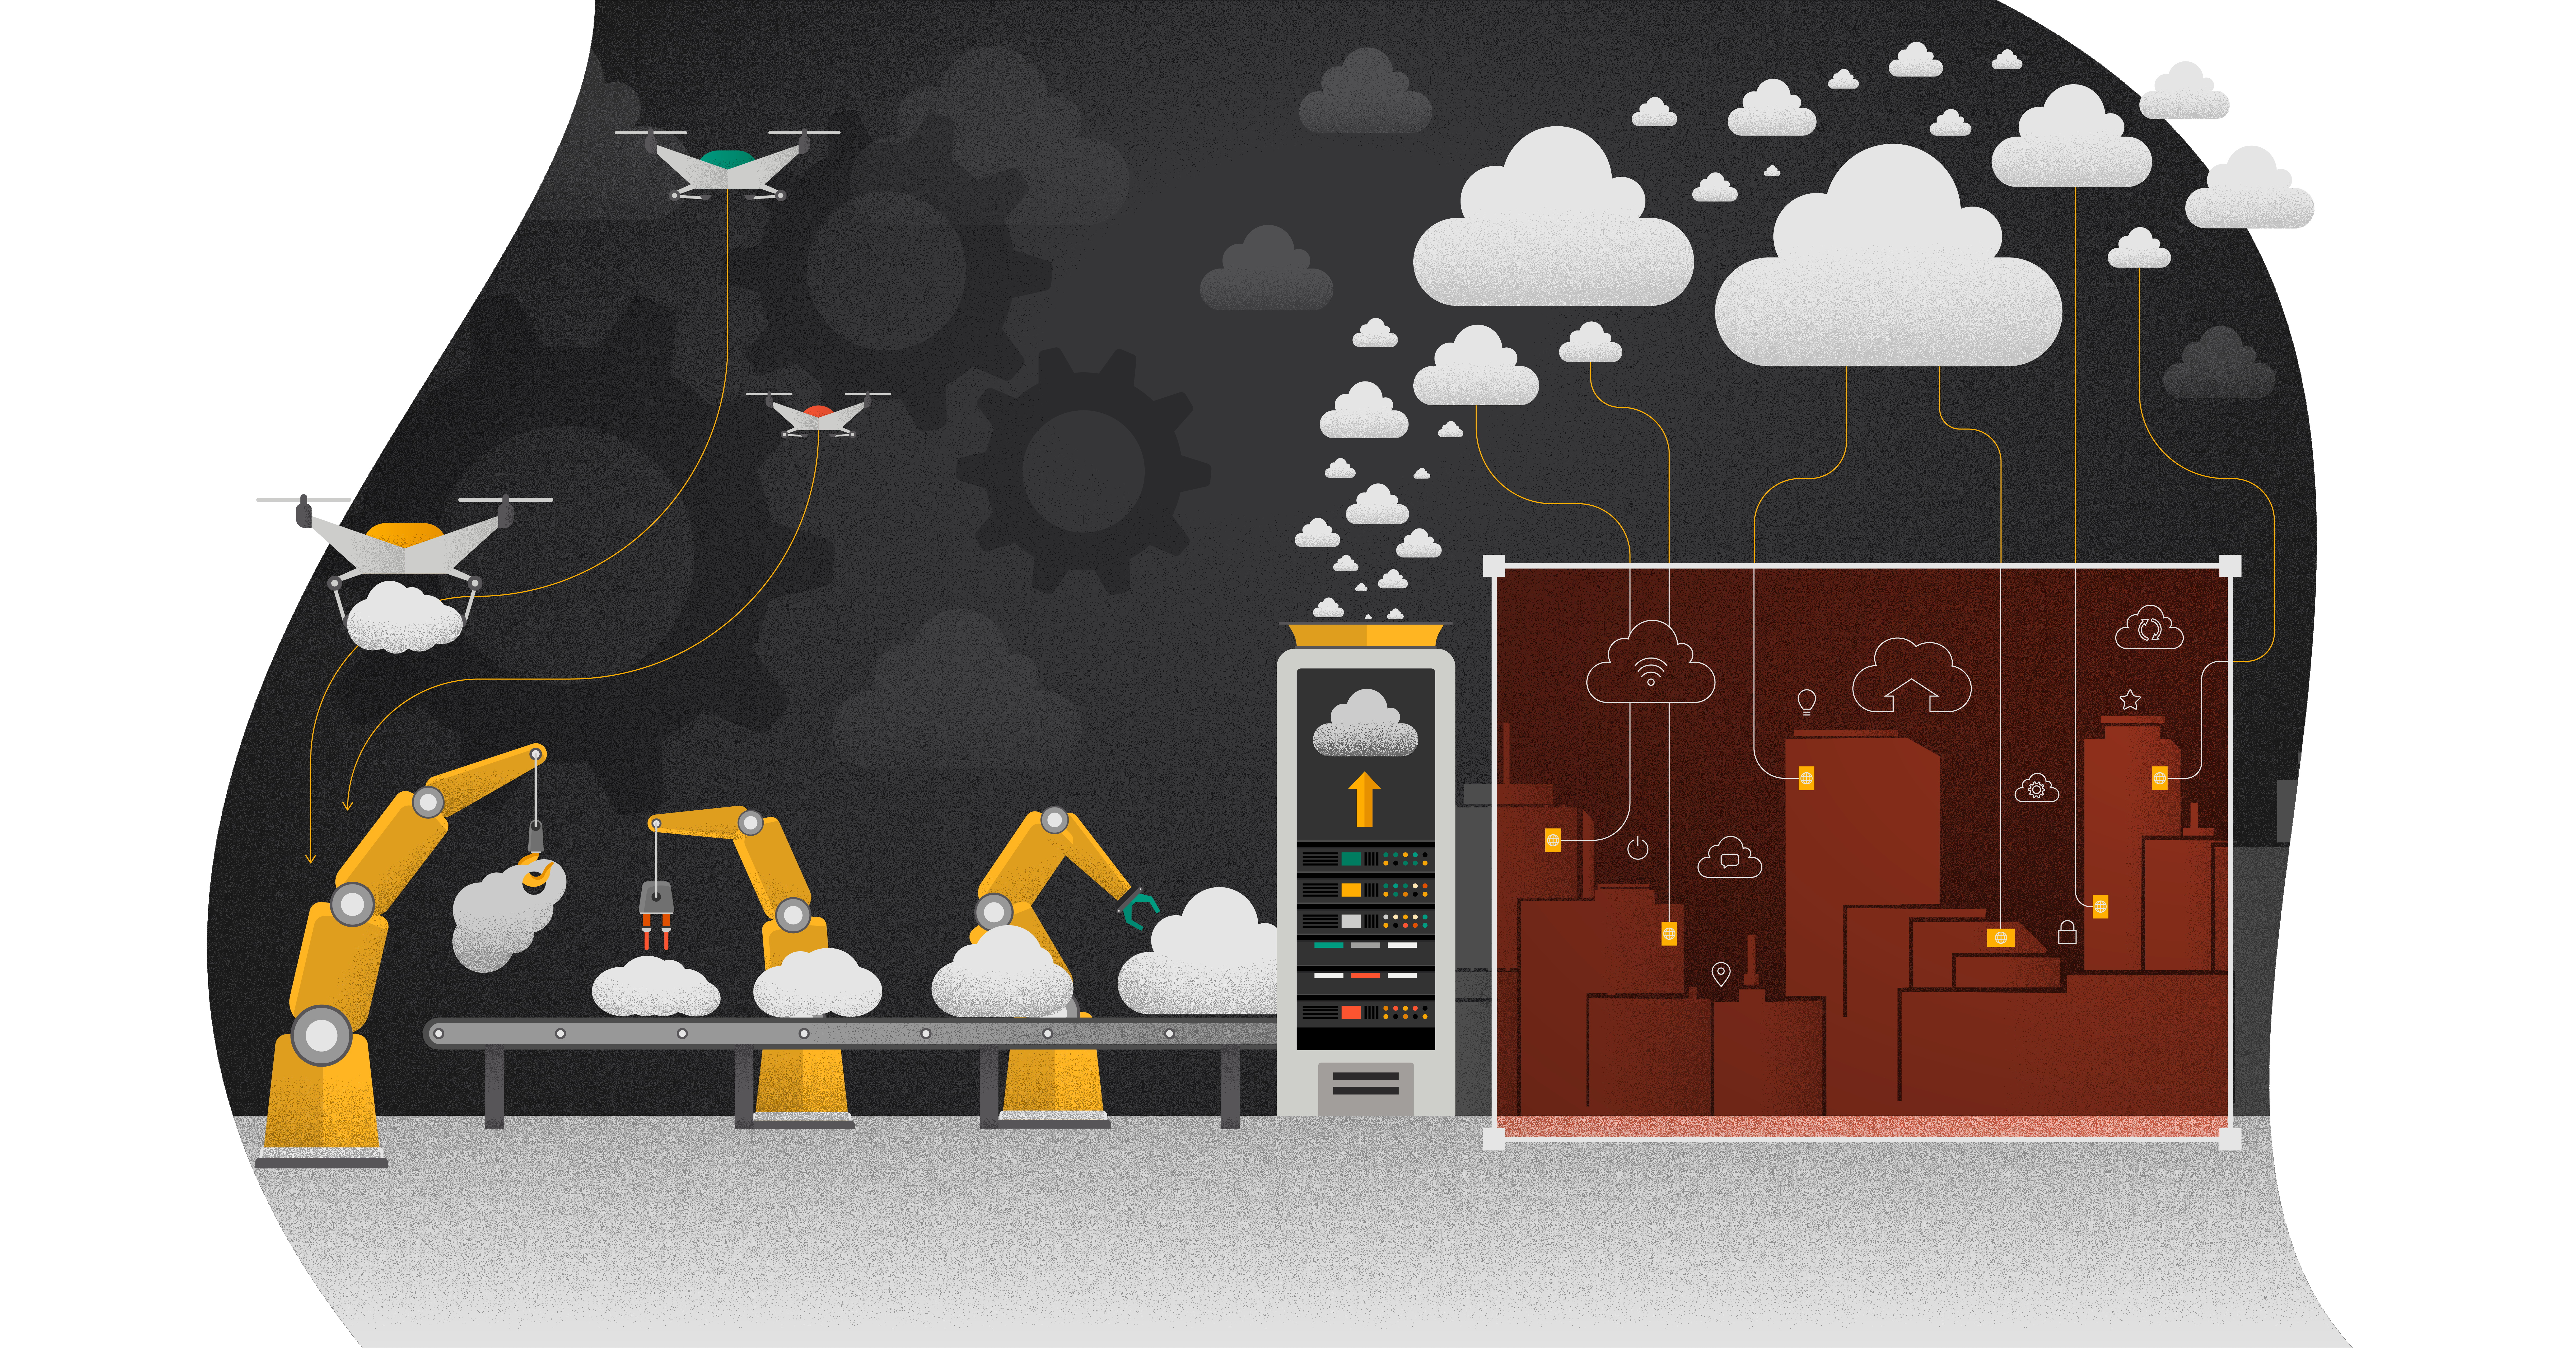 Optimizing cloud operations through automation